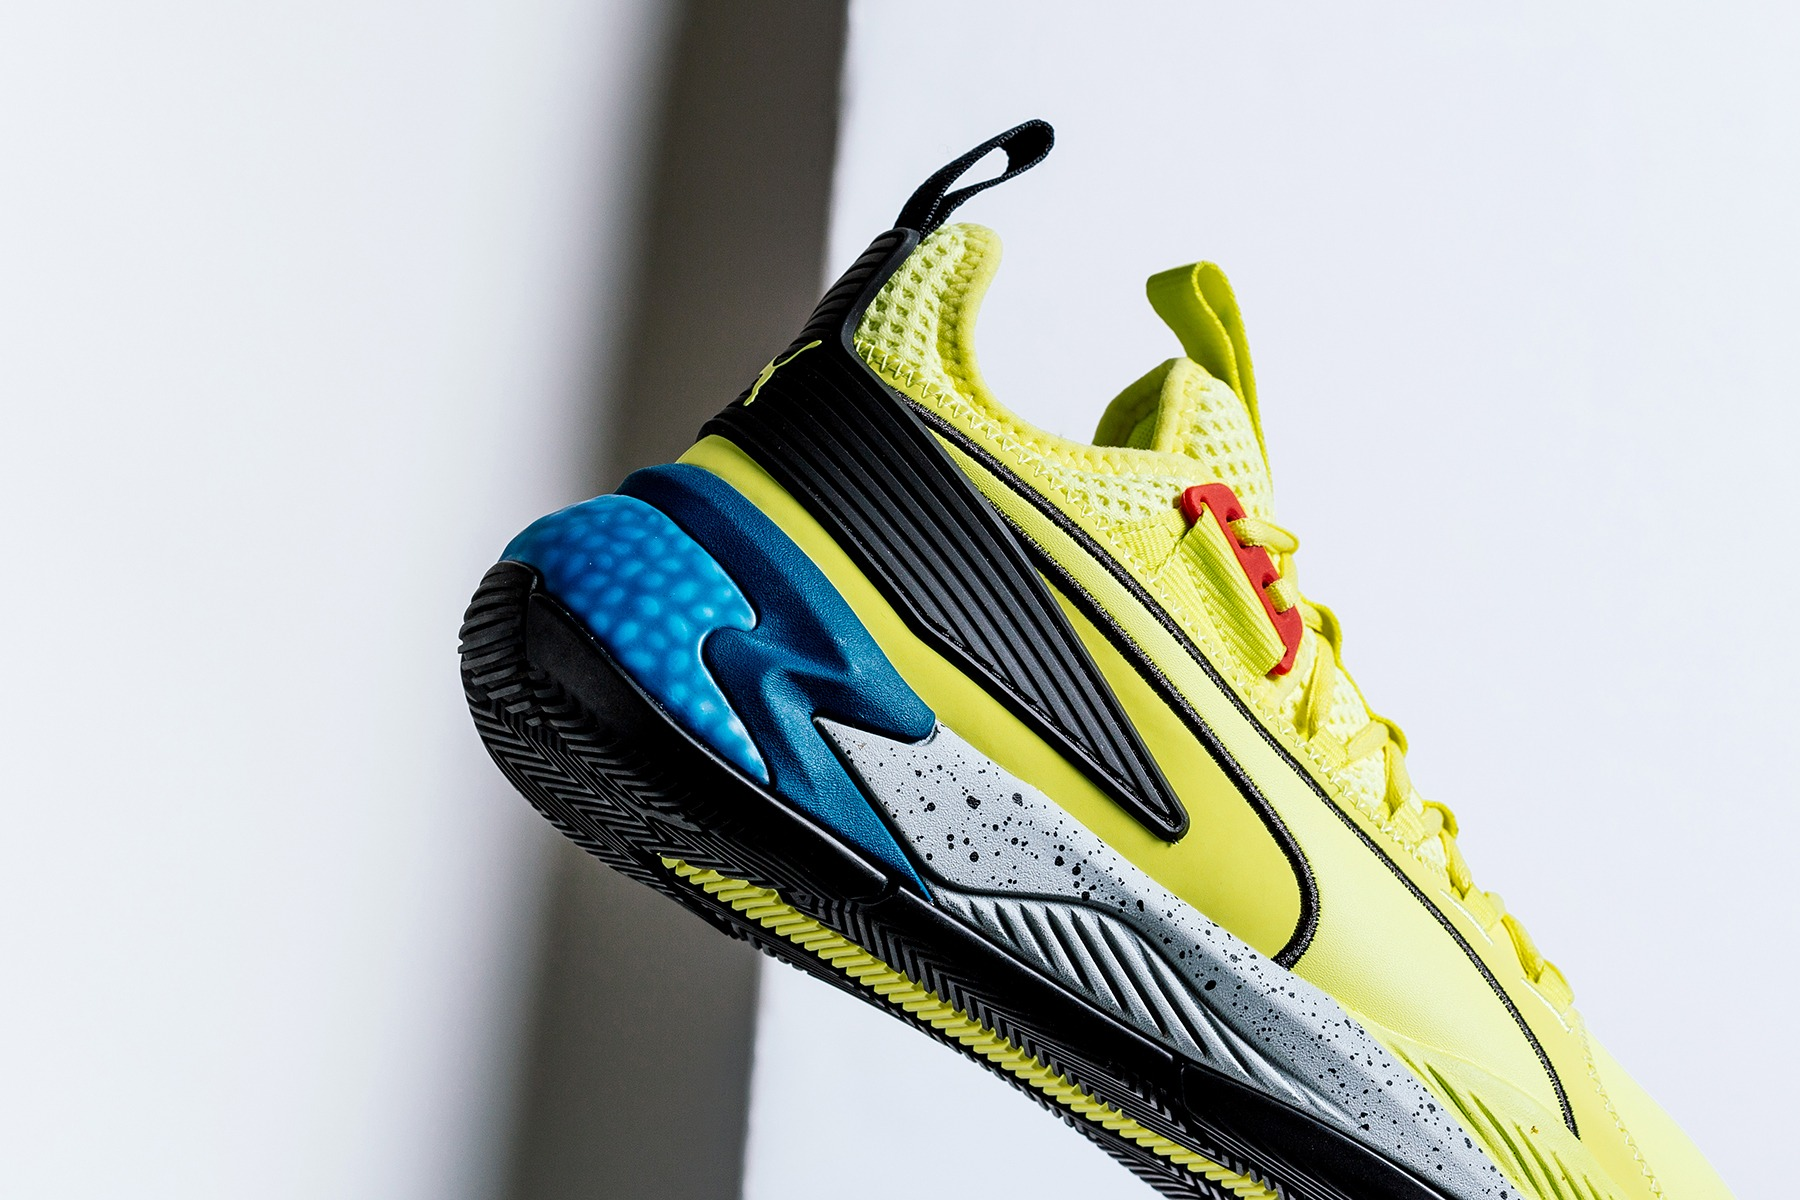 2b4f9cbbd Made for hoops, Puma has just dropped the Uproar Hybrid Court Thunder in a  colorway inspired by the Thunder Spectra.